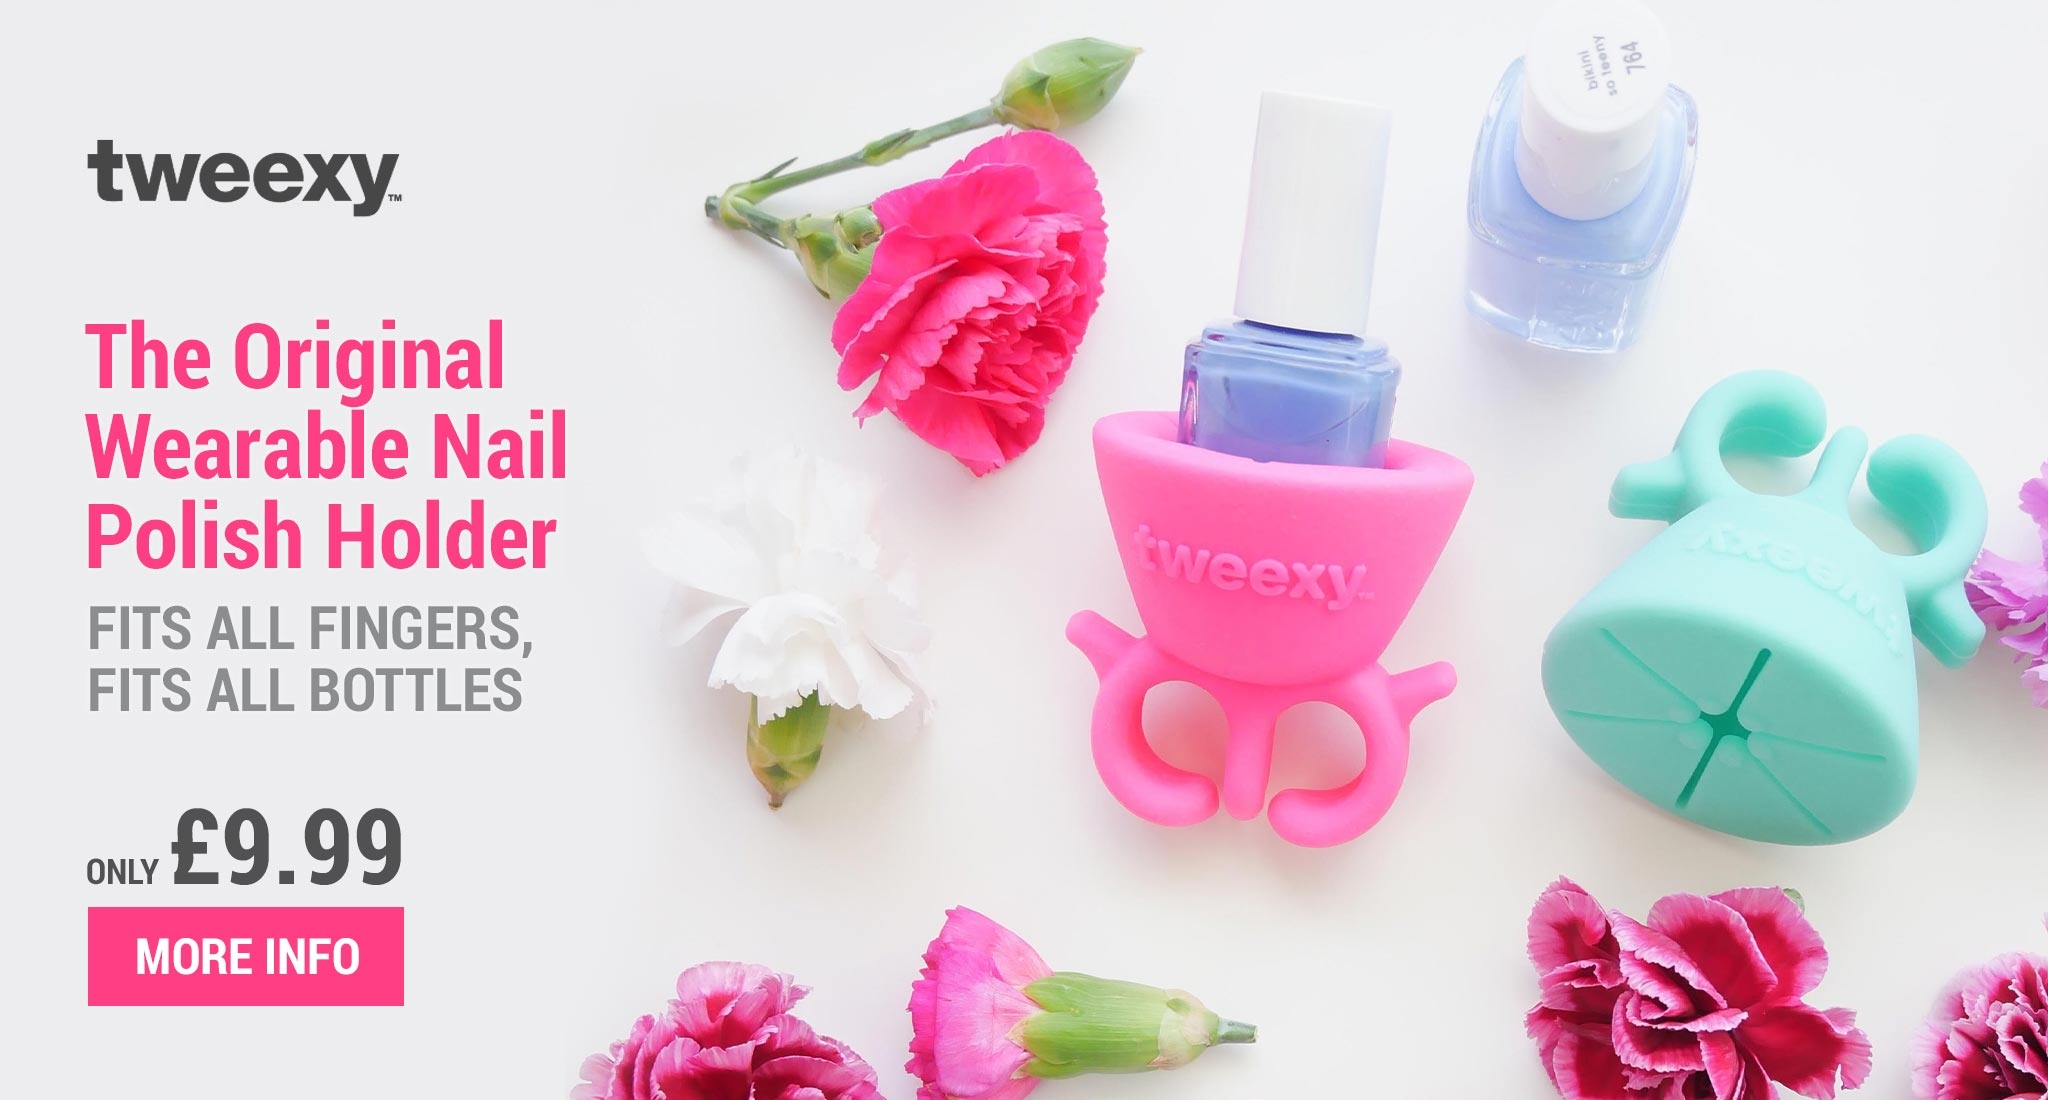 Tweexy the Original Wearable Nail Varnish Holder